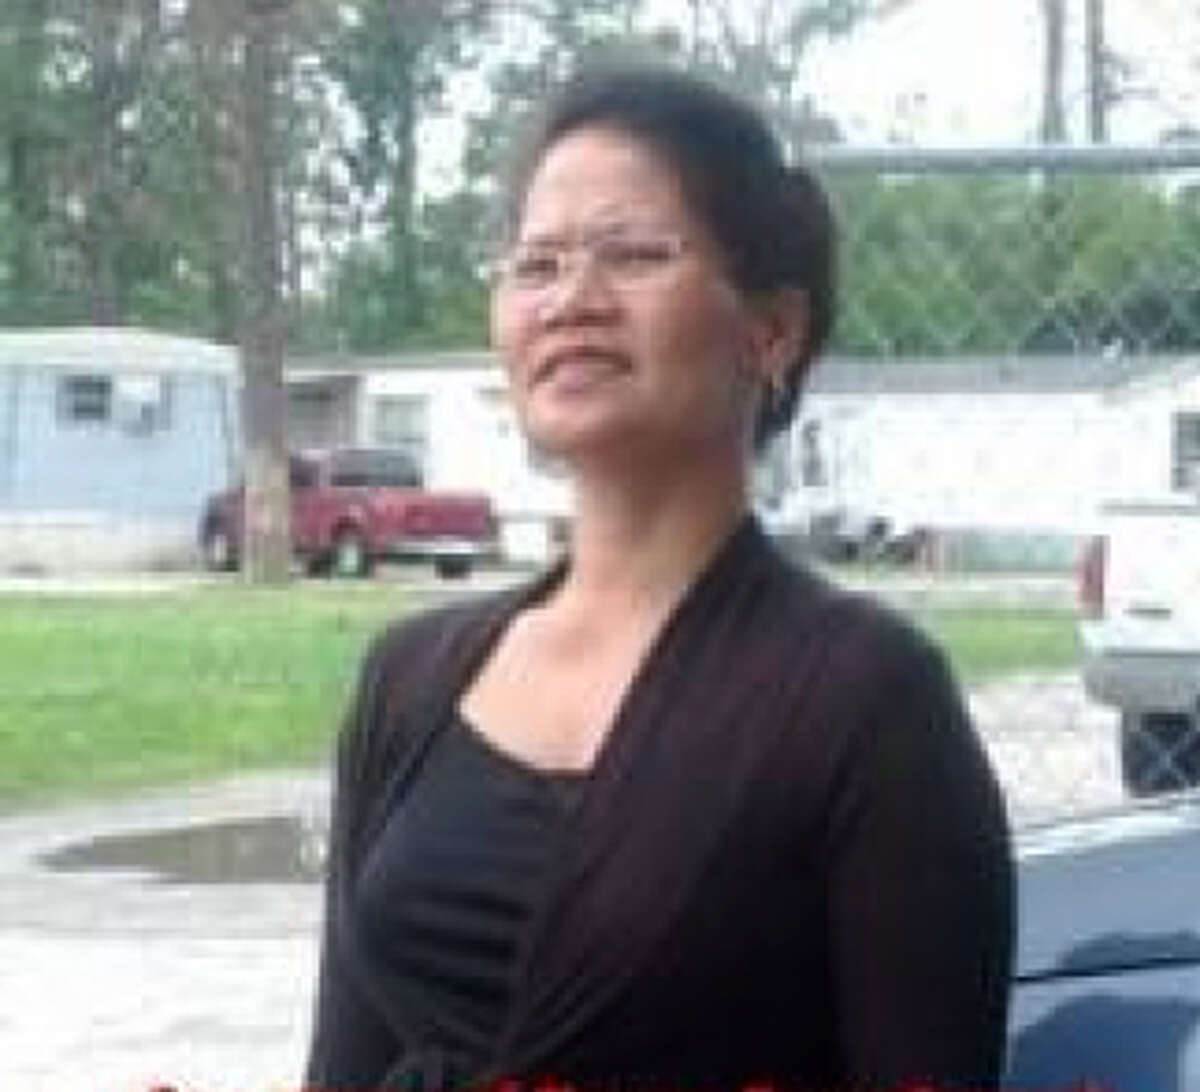 Rosemarie Hutcheson vanished on Friday near her trailer.